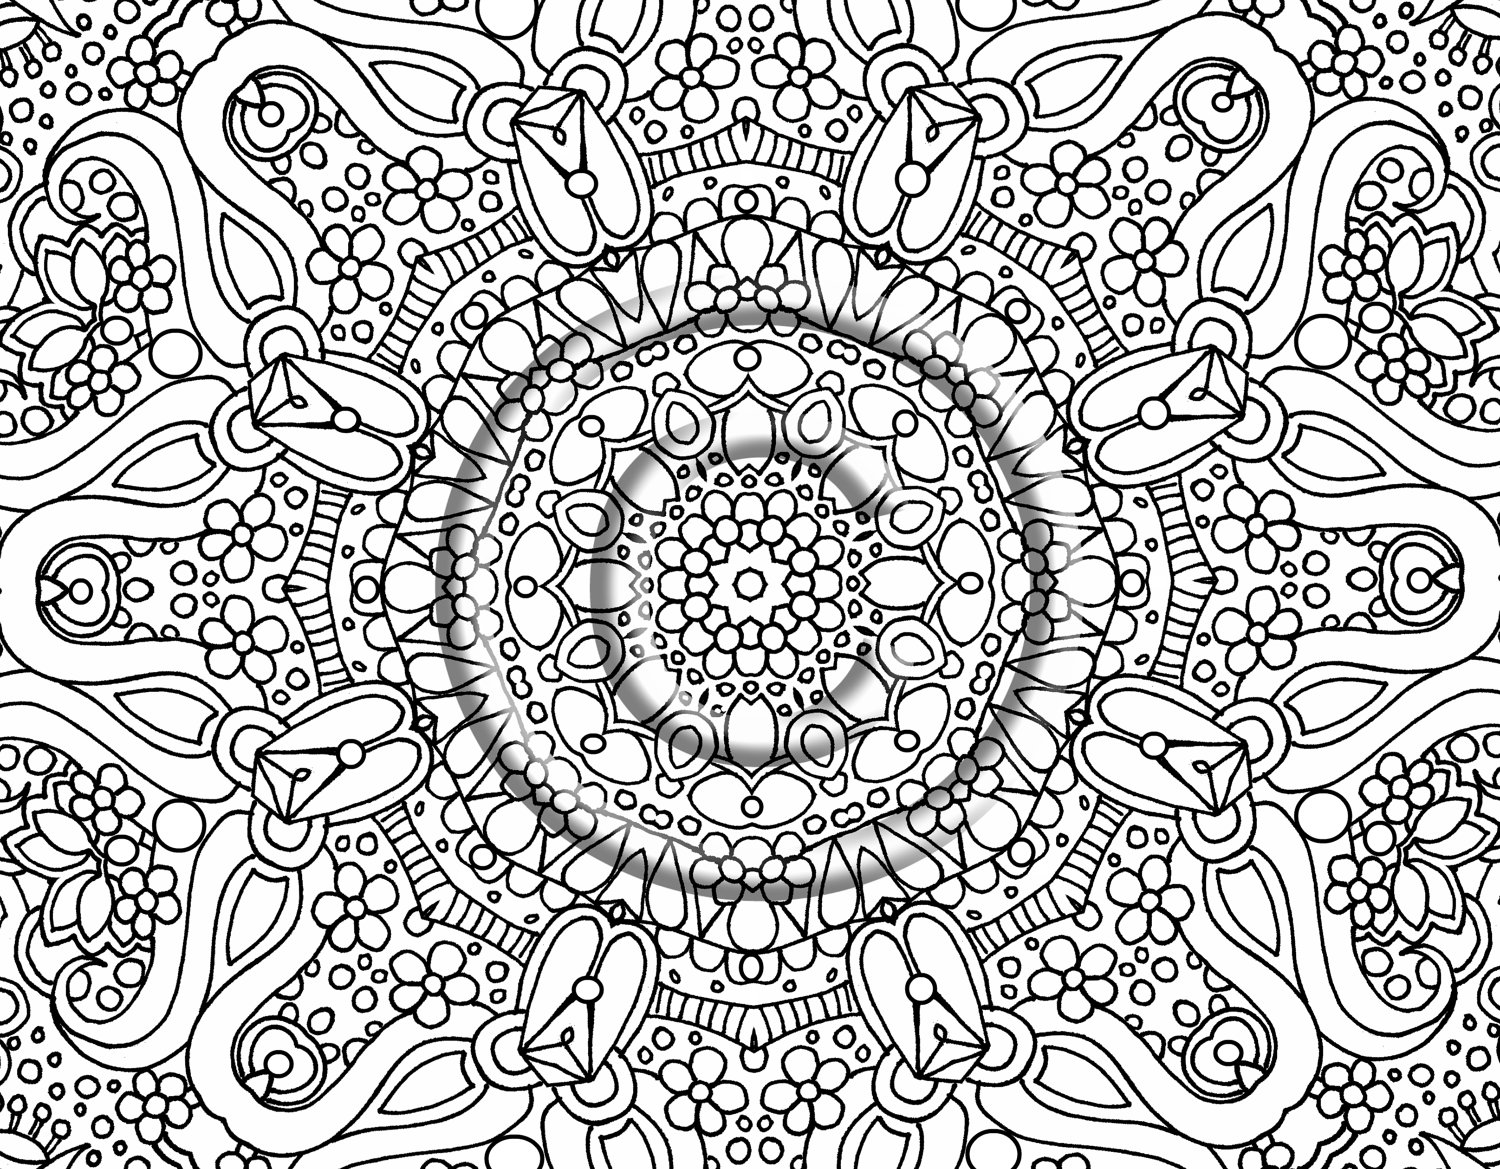 coloring designs free free printable abstract coloring pages for adults coloring free designs